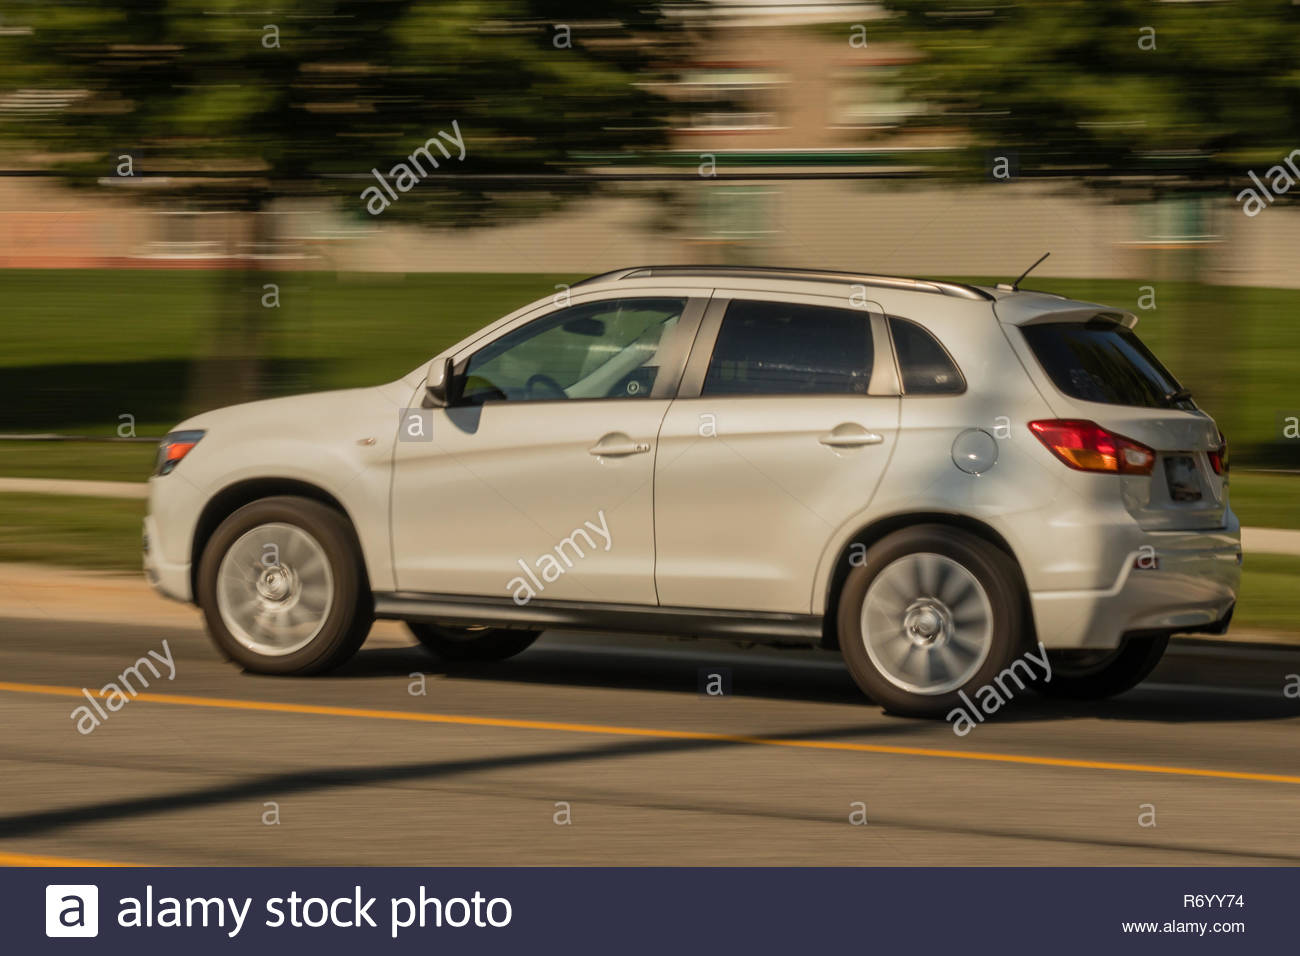 White SUV zipping through the streets - Stock Image